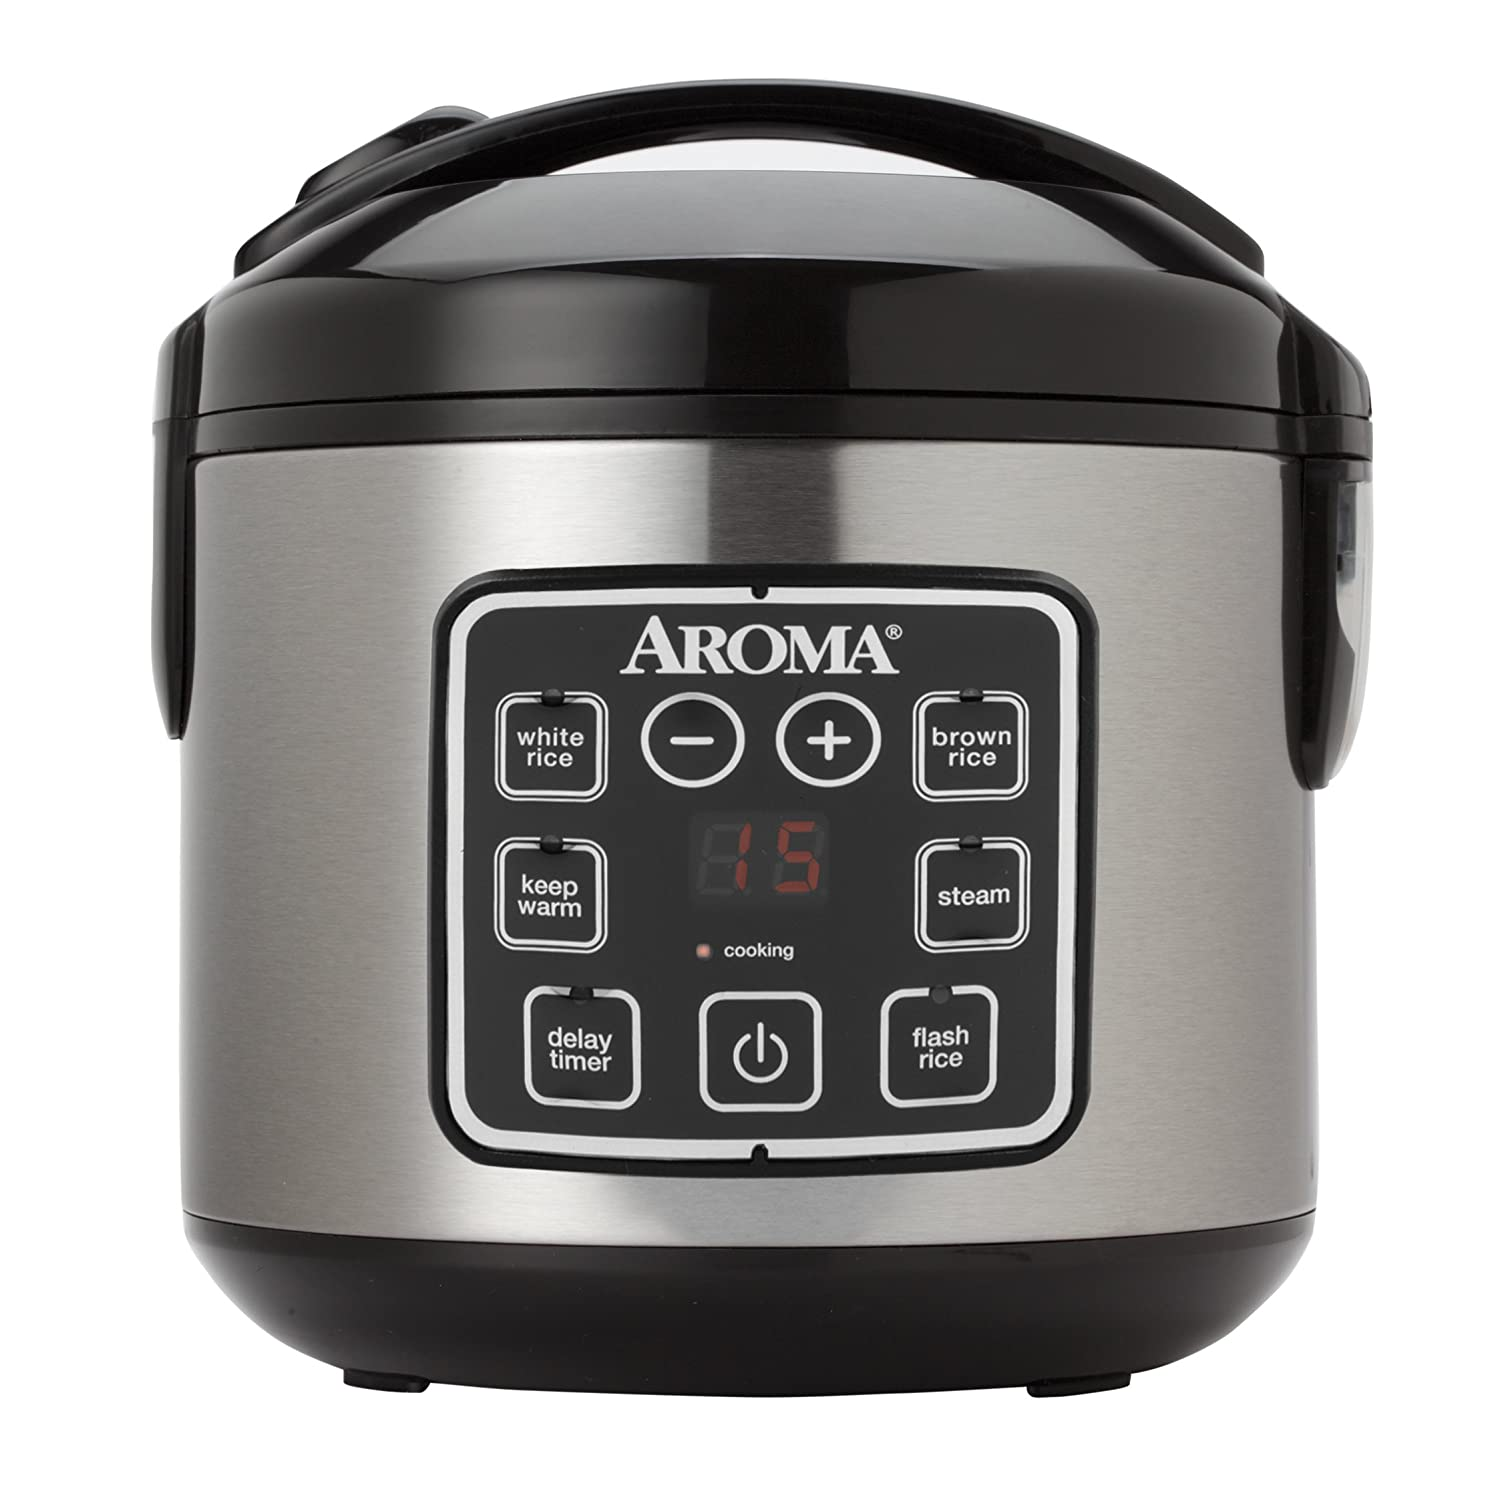 The Aroma Housewares Stainless steel Digital cool-touch Rice cooker and food steamer